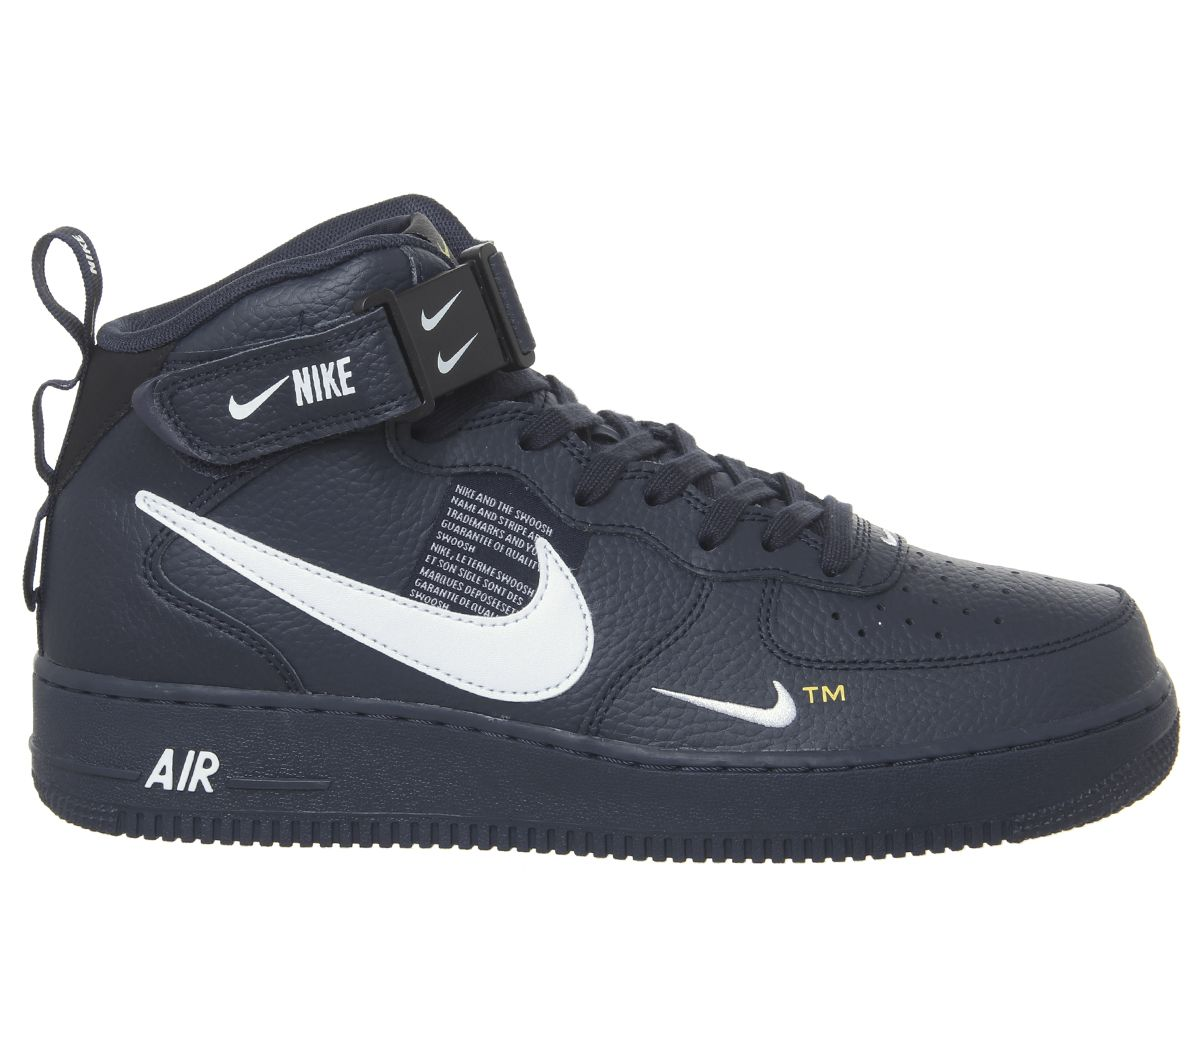 new style 65ae8 c1750 Air Force 1 Mid Lv8 Trainers